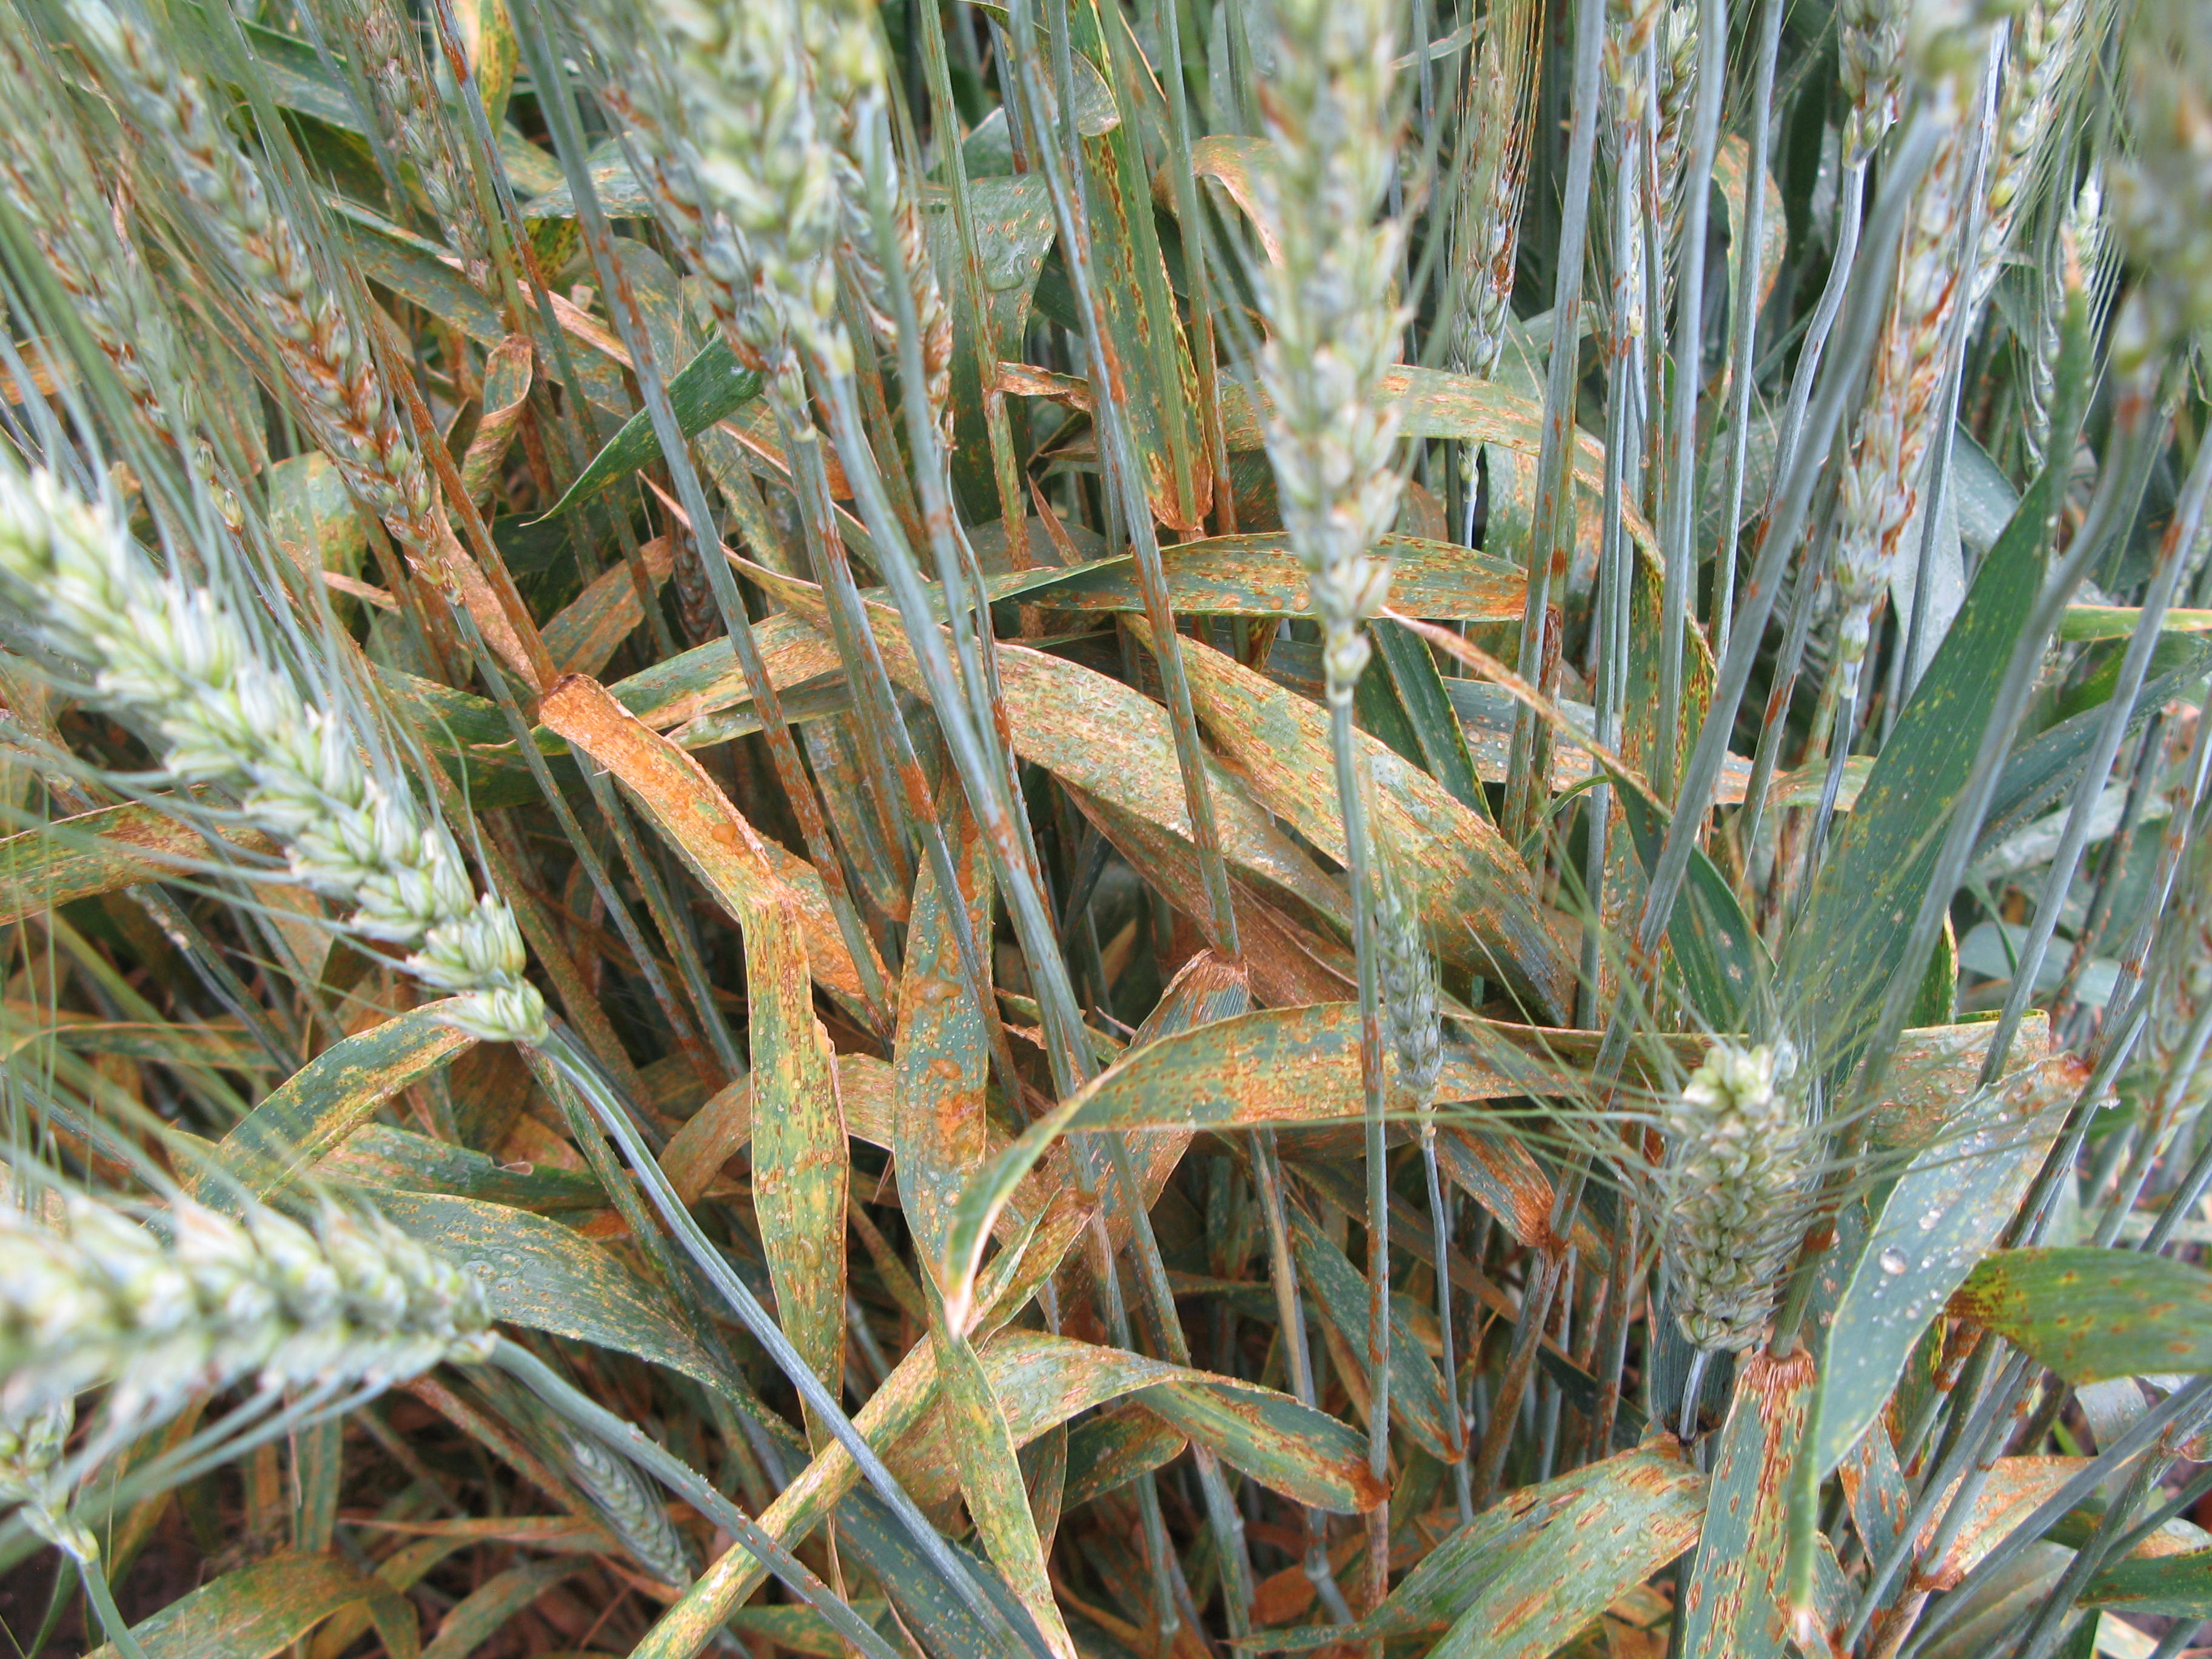 Stem rust may infect any part of the aboveground portions of the wheat plant.